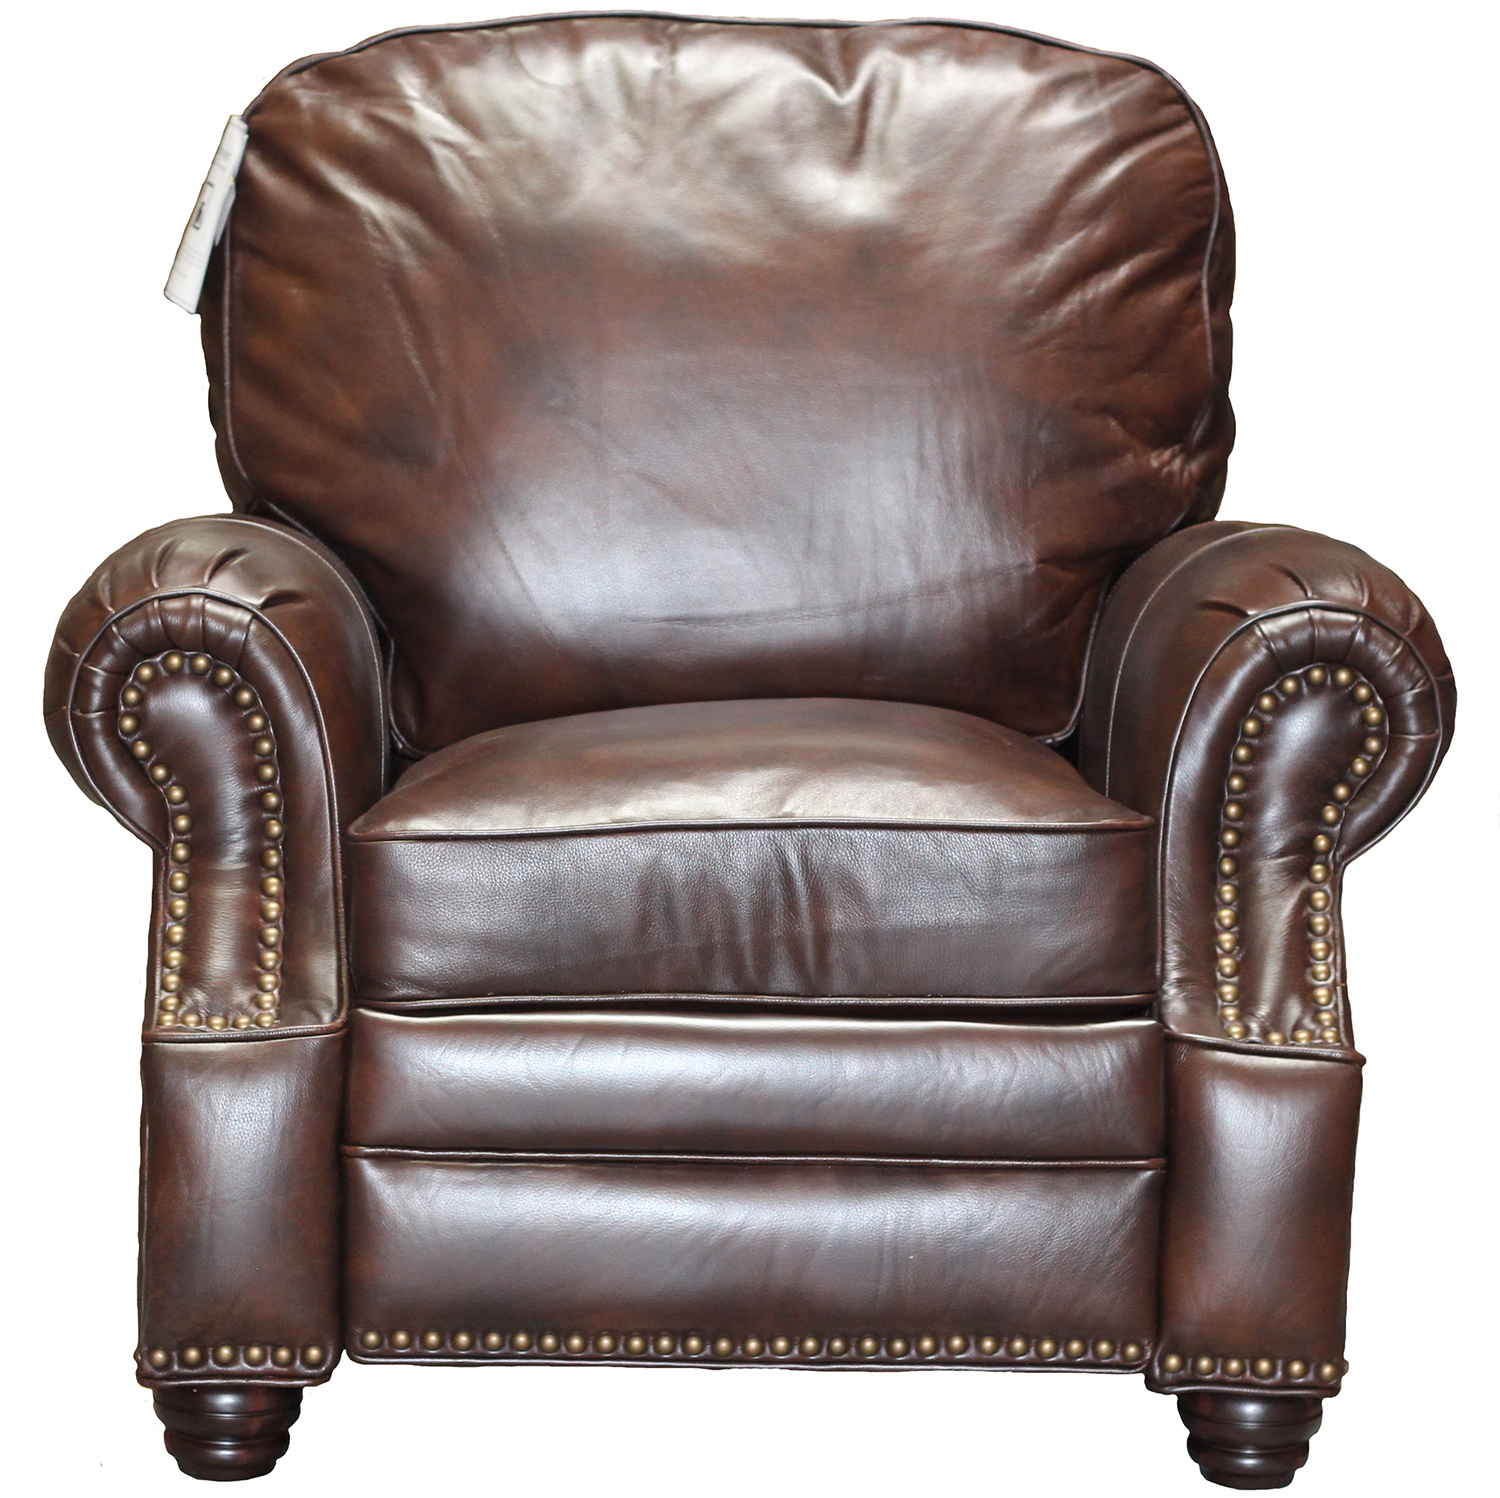 Barcalounger Longhorn II Leather Recliner Chair